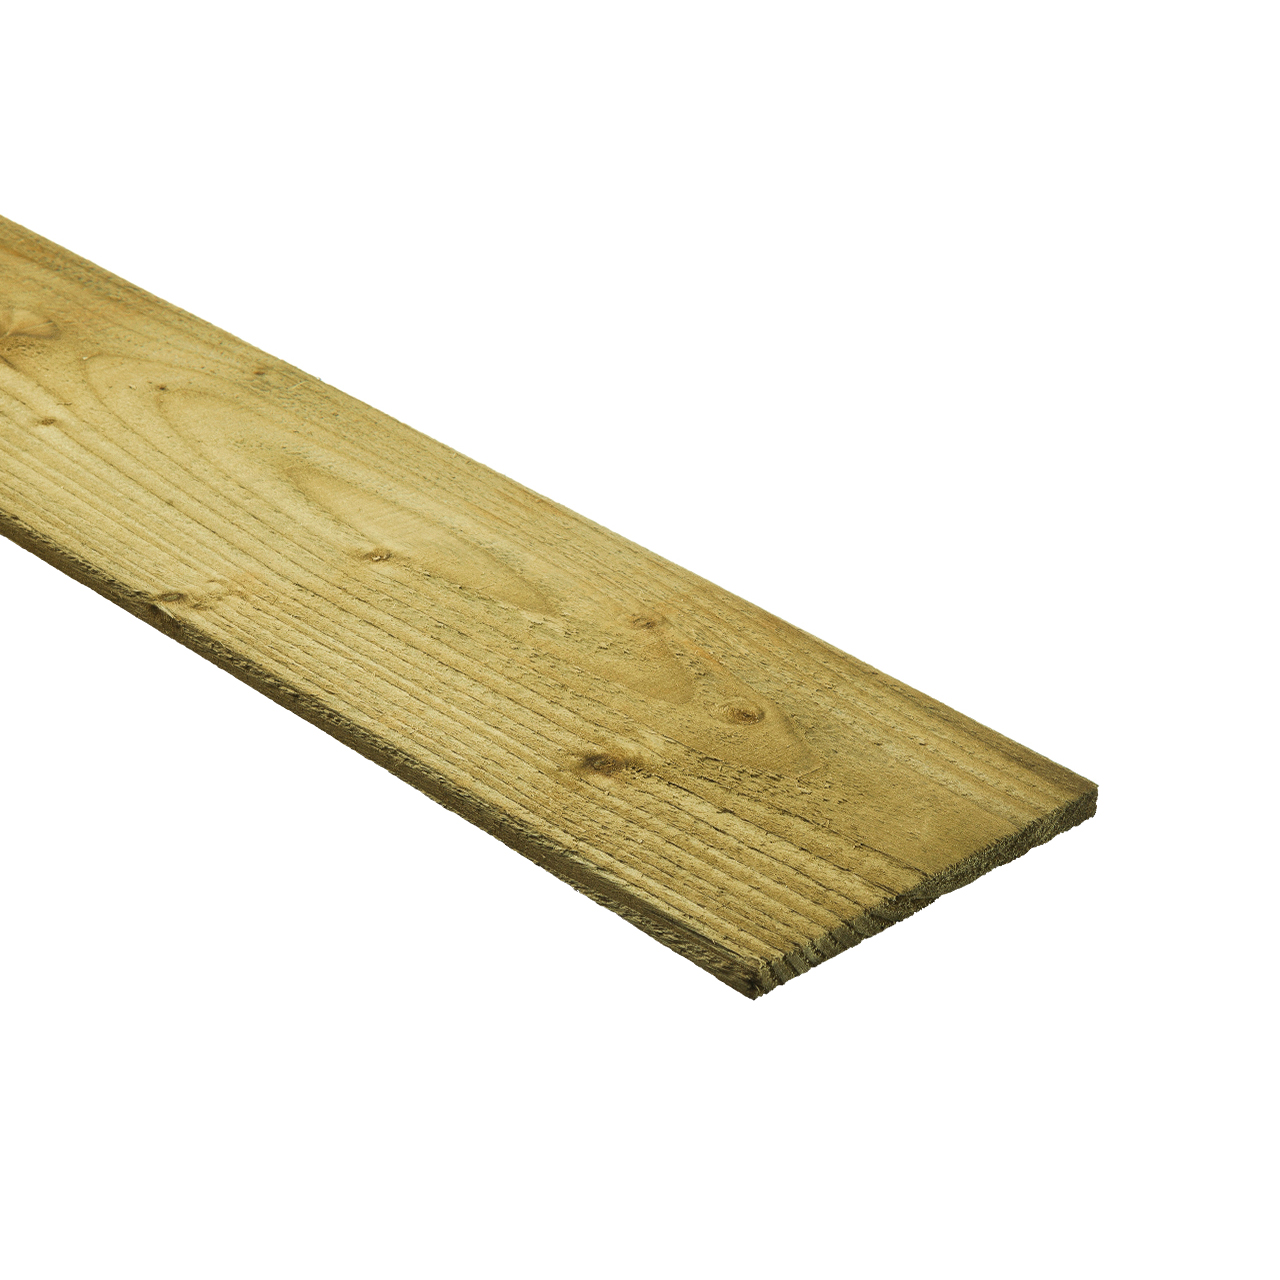 Rough Sawn Carcassing Green Treated 16mm x 100mm image 0